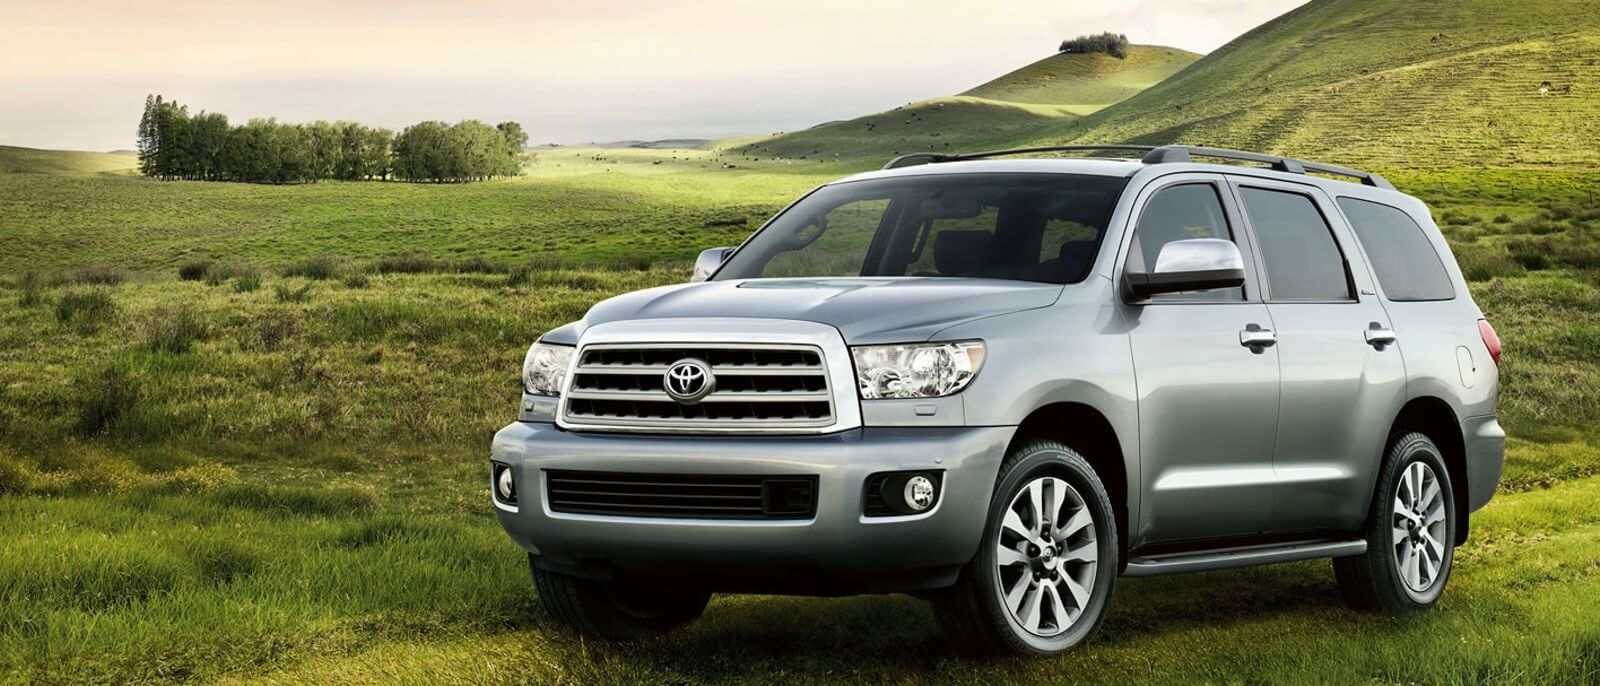 2017 Toyota Sequoia Parked